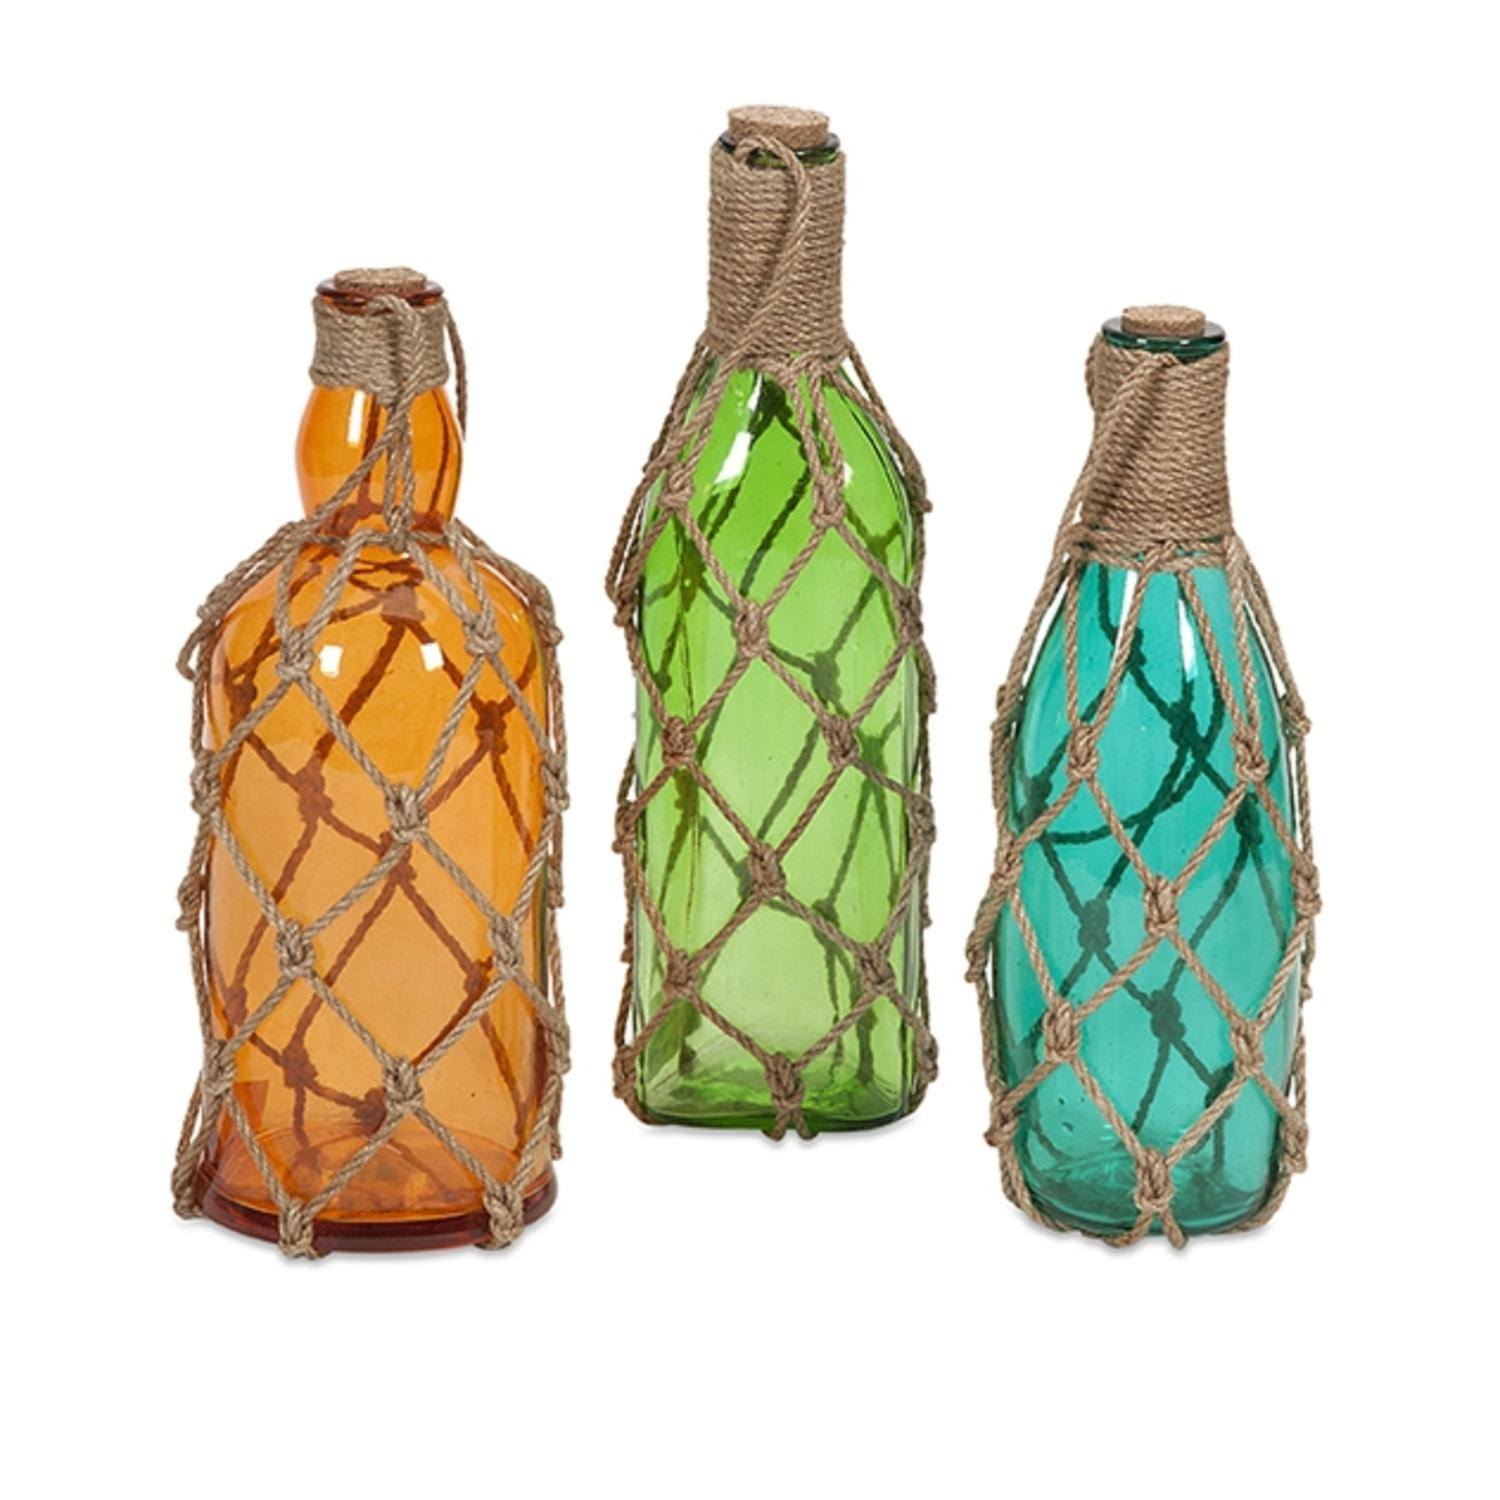 Set of 3 Colorful Translucent Glass Bottles with Jute Hangers - 12""